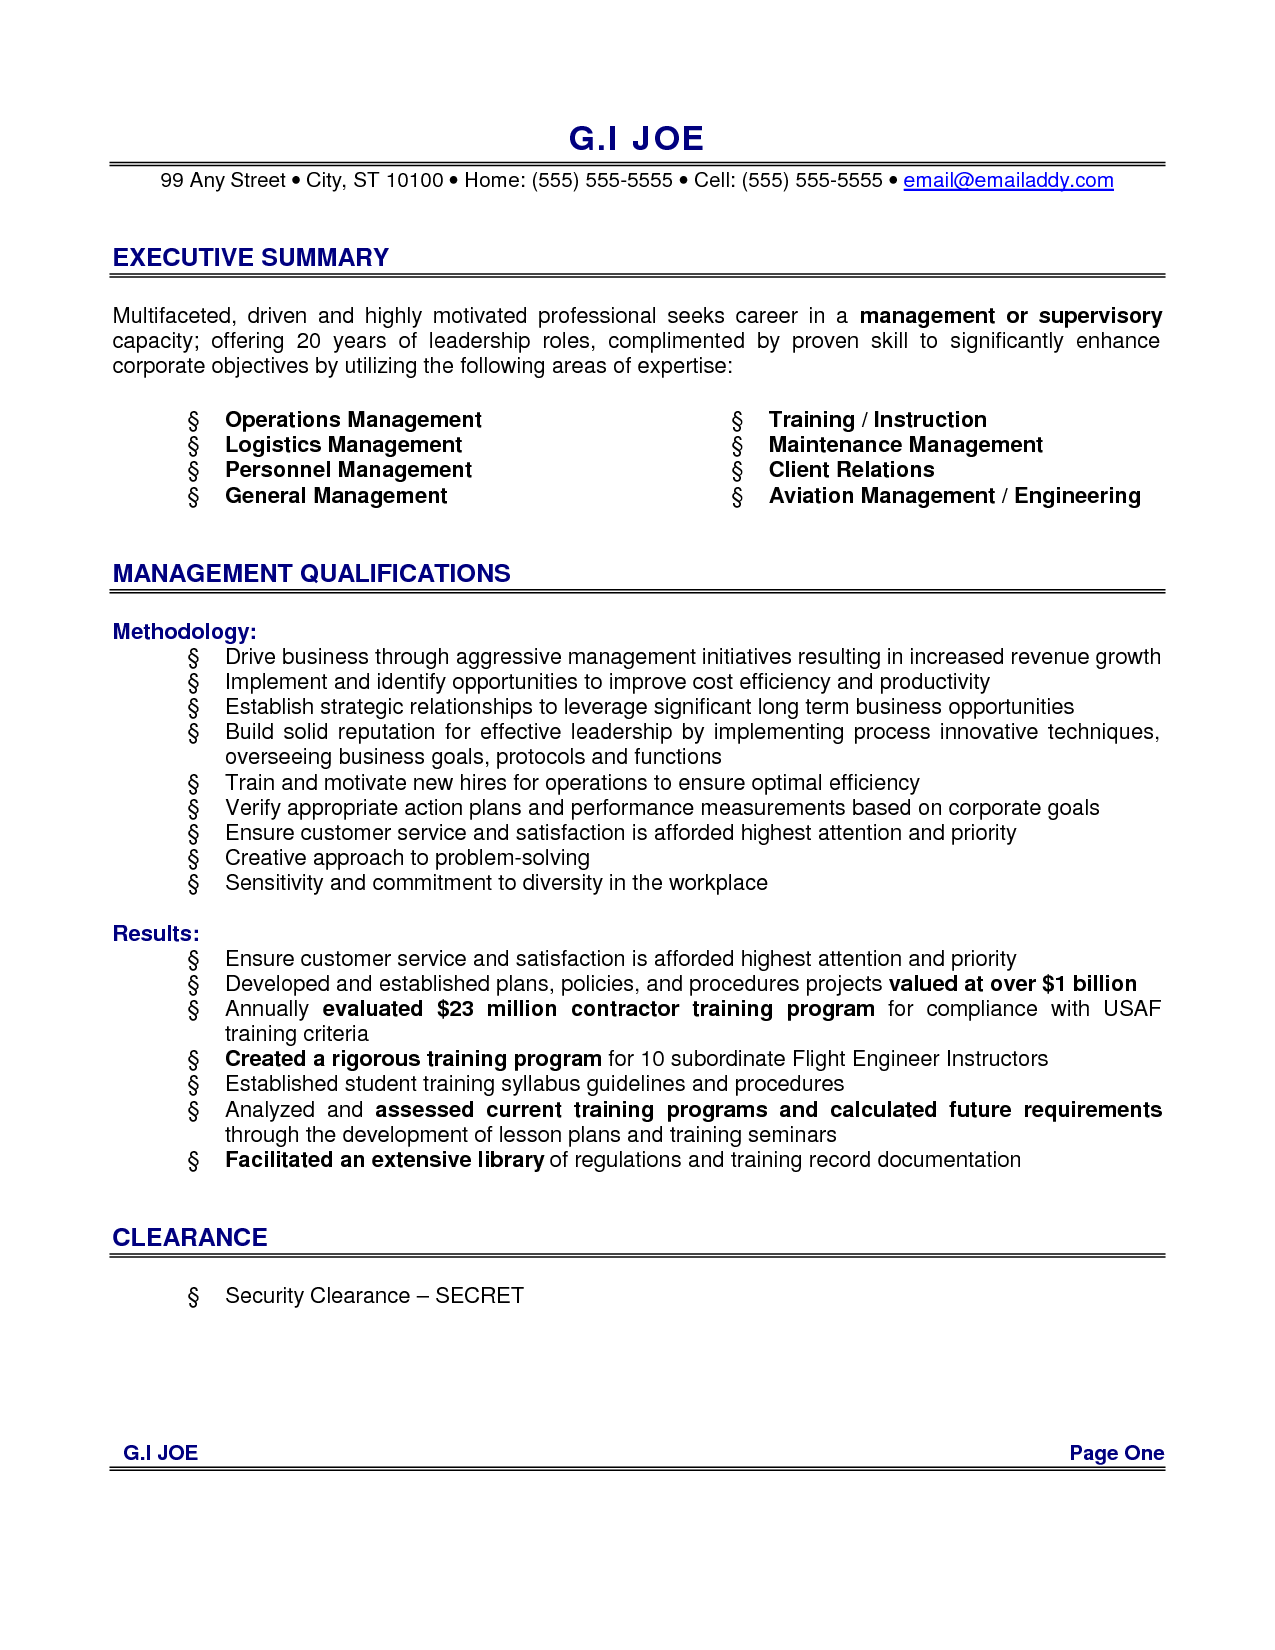 executive summary of your resume sample